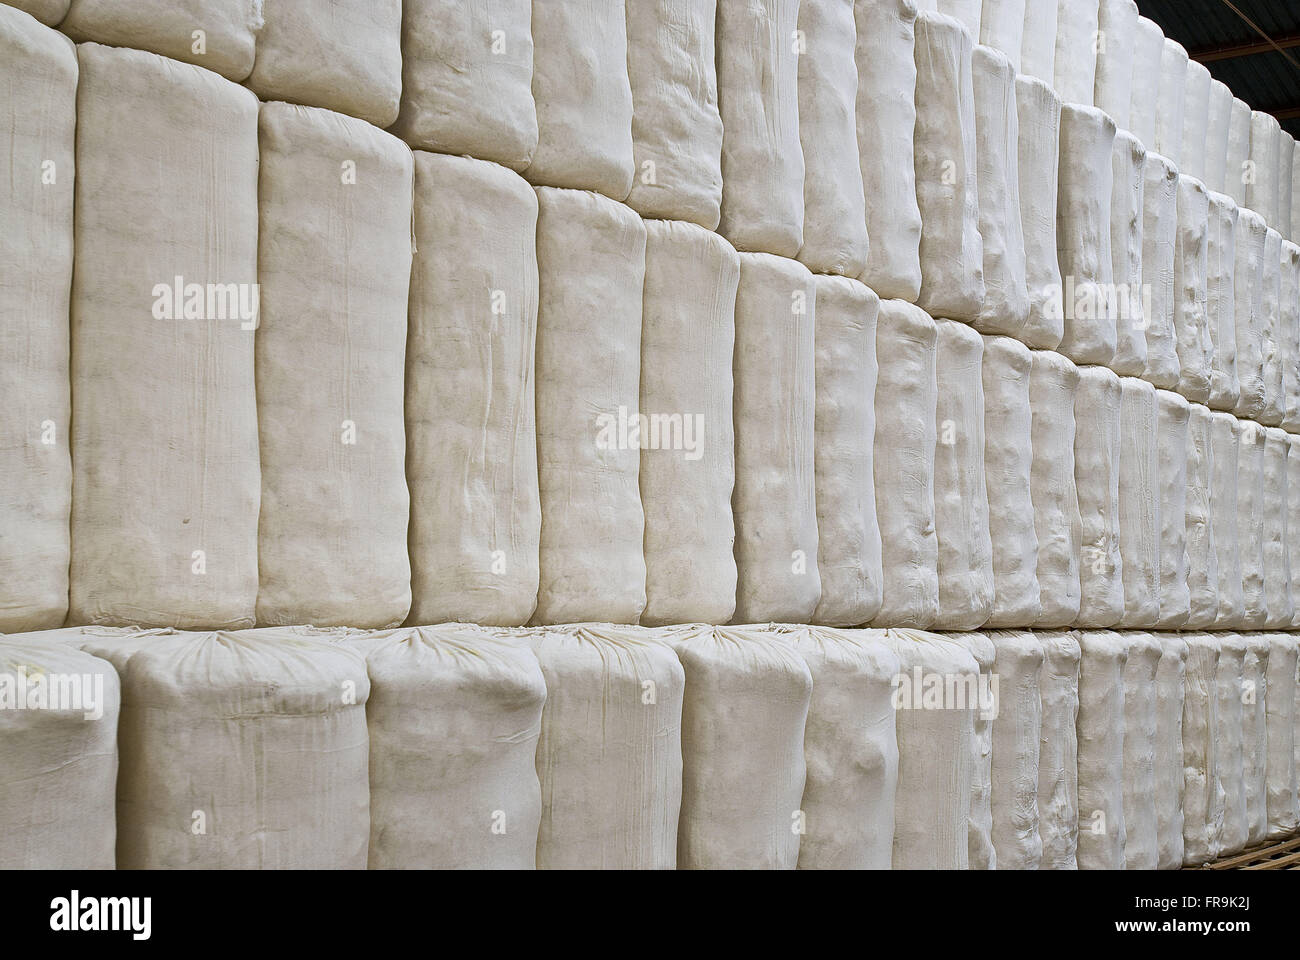 Bales of cotton processing in rural area of Costa Rica plant - Mato Grosso do Sul - Stock Image